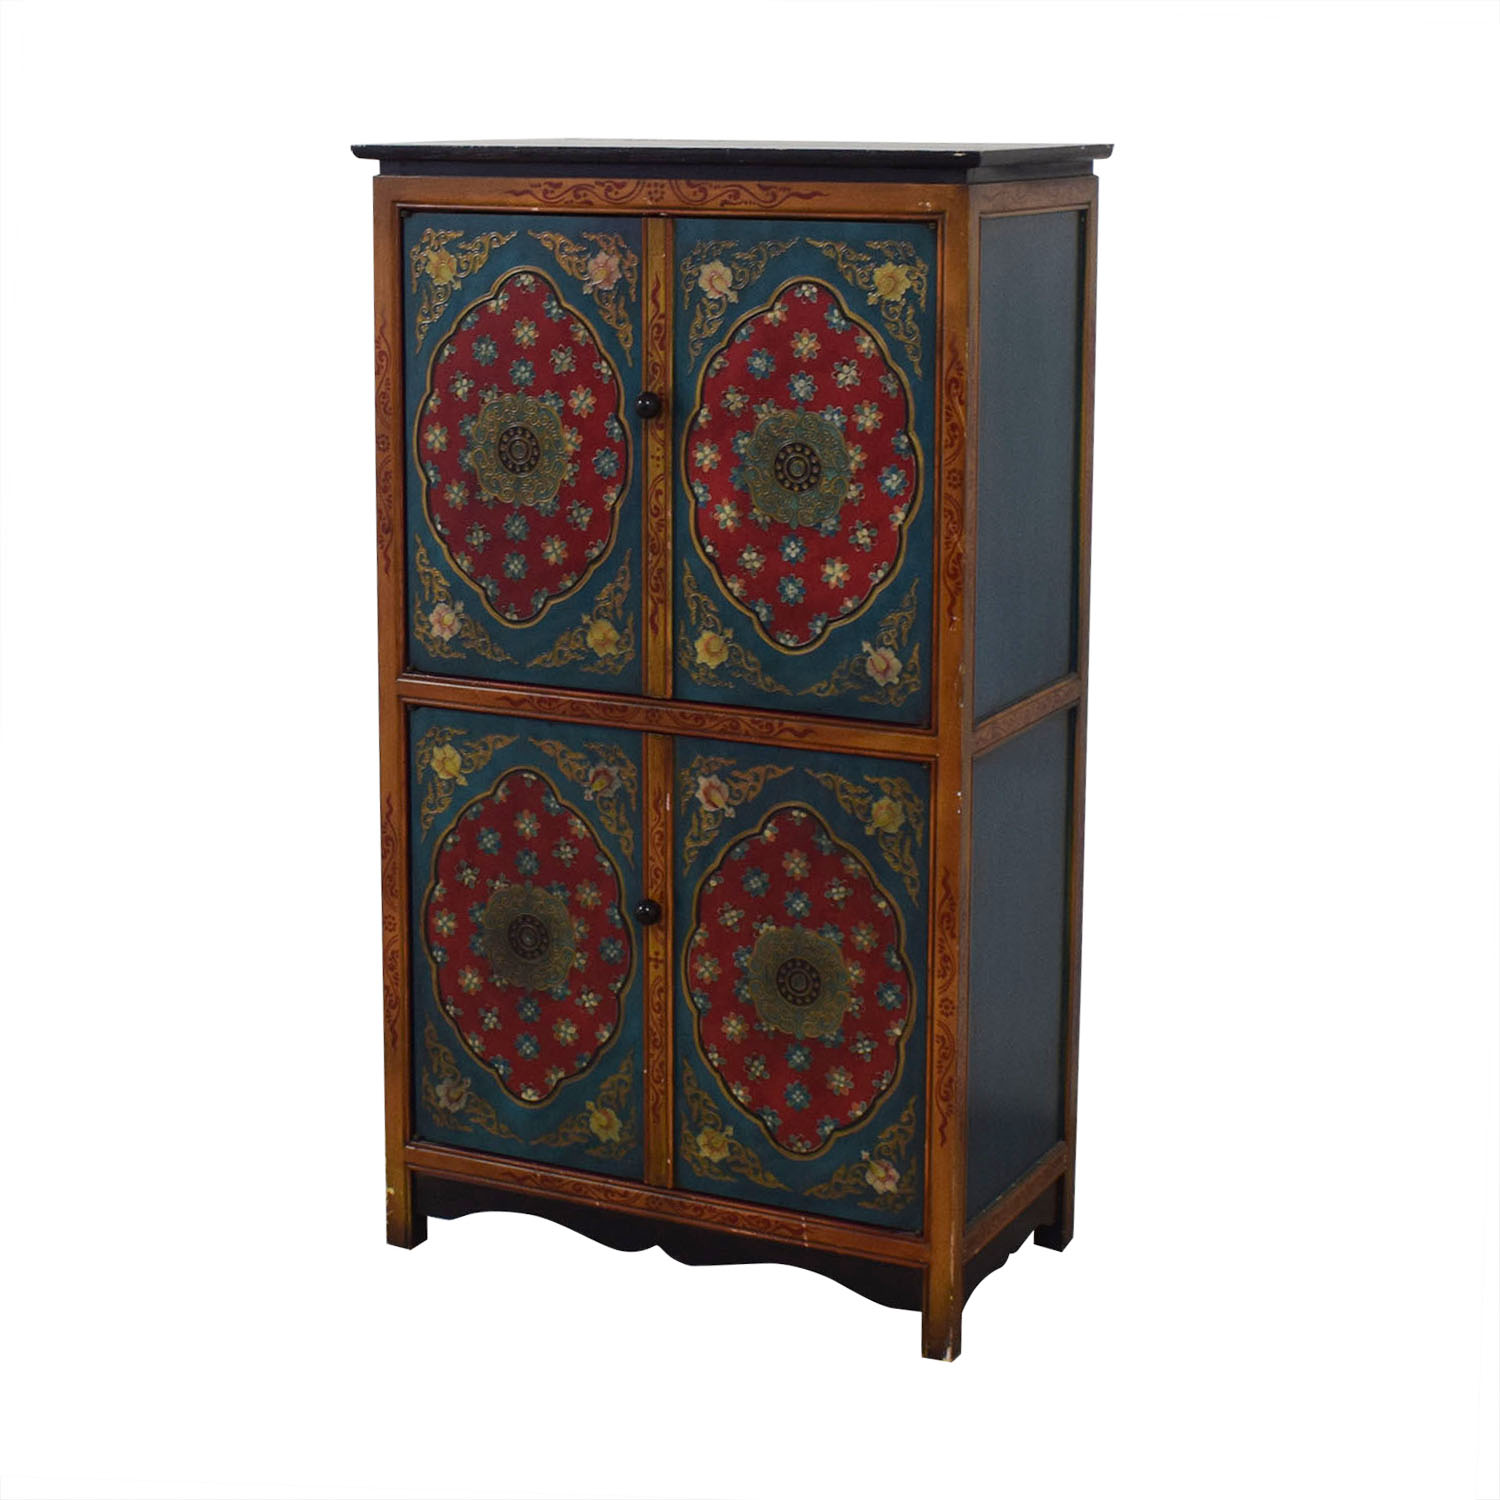 Pier 1 Pier 1 Decorative Wine Cabinet Storage